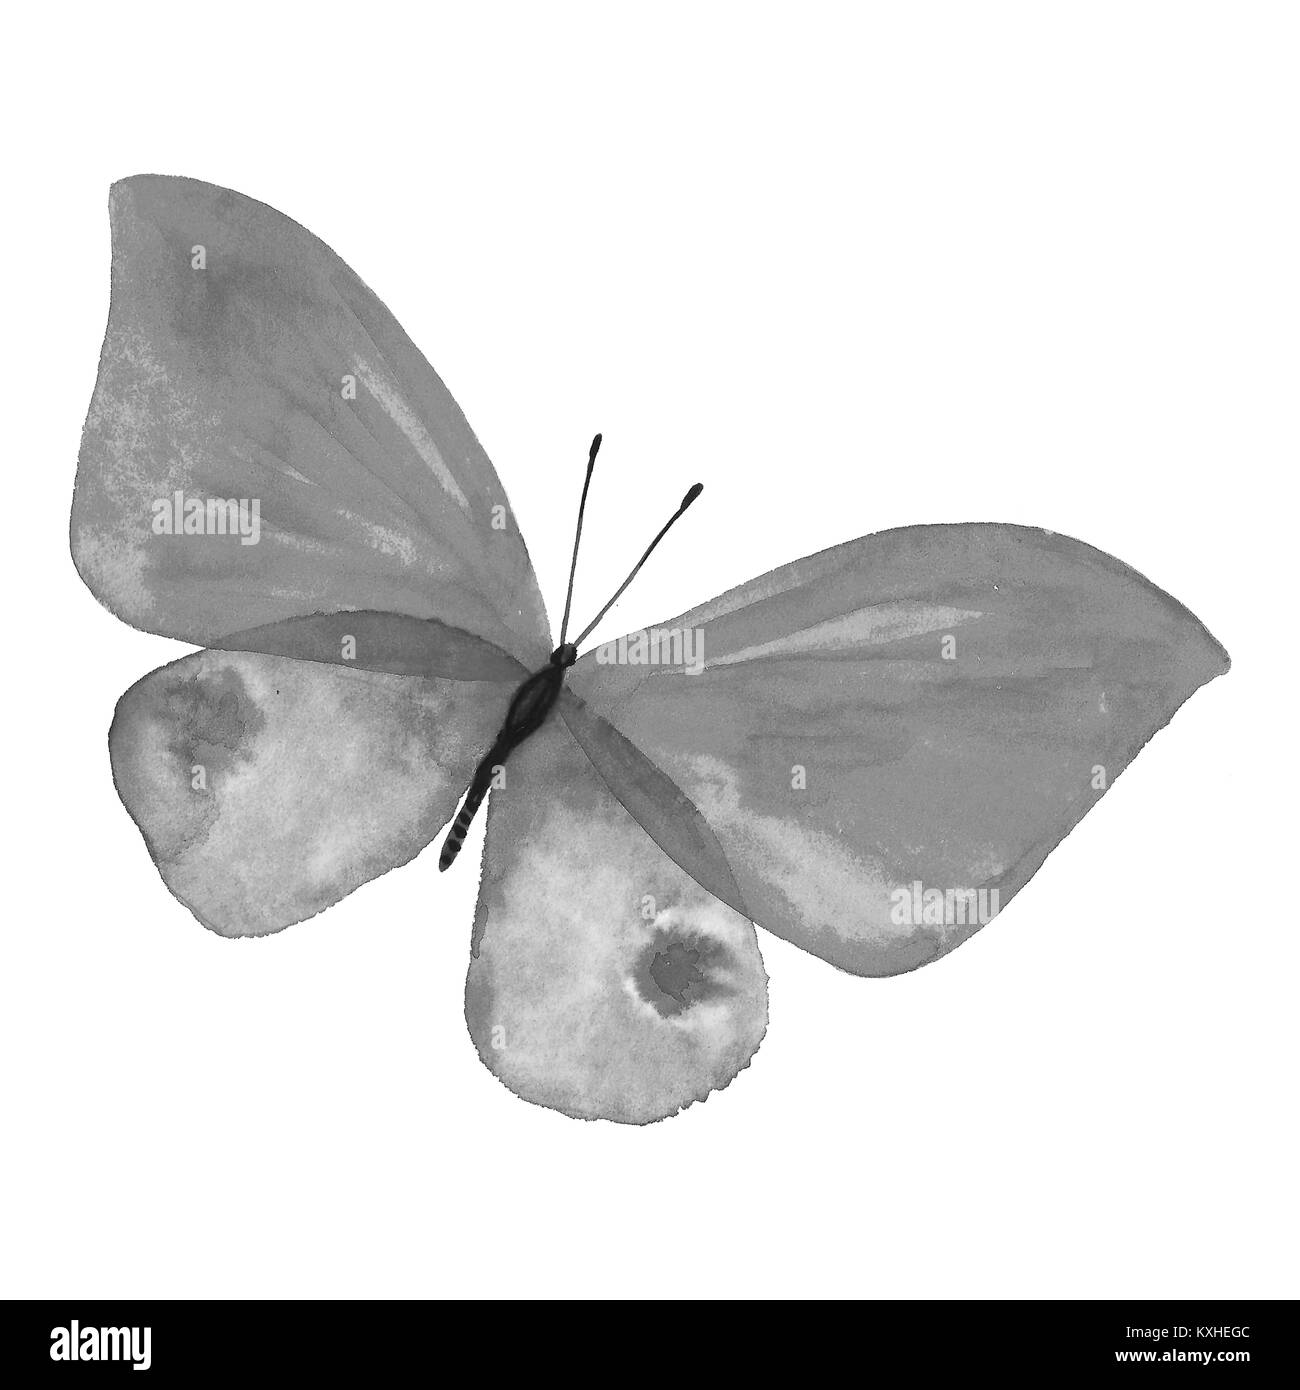 e6d6de0e6 Black and white butterfly. Illustration of an animal butterfly handmade.  Hand-painted insect